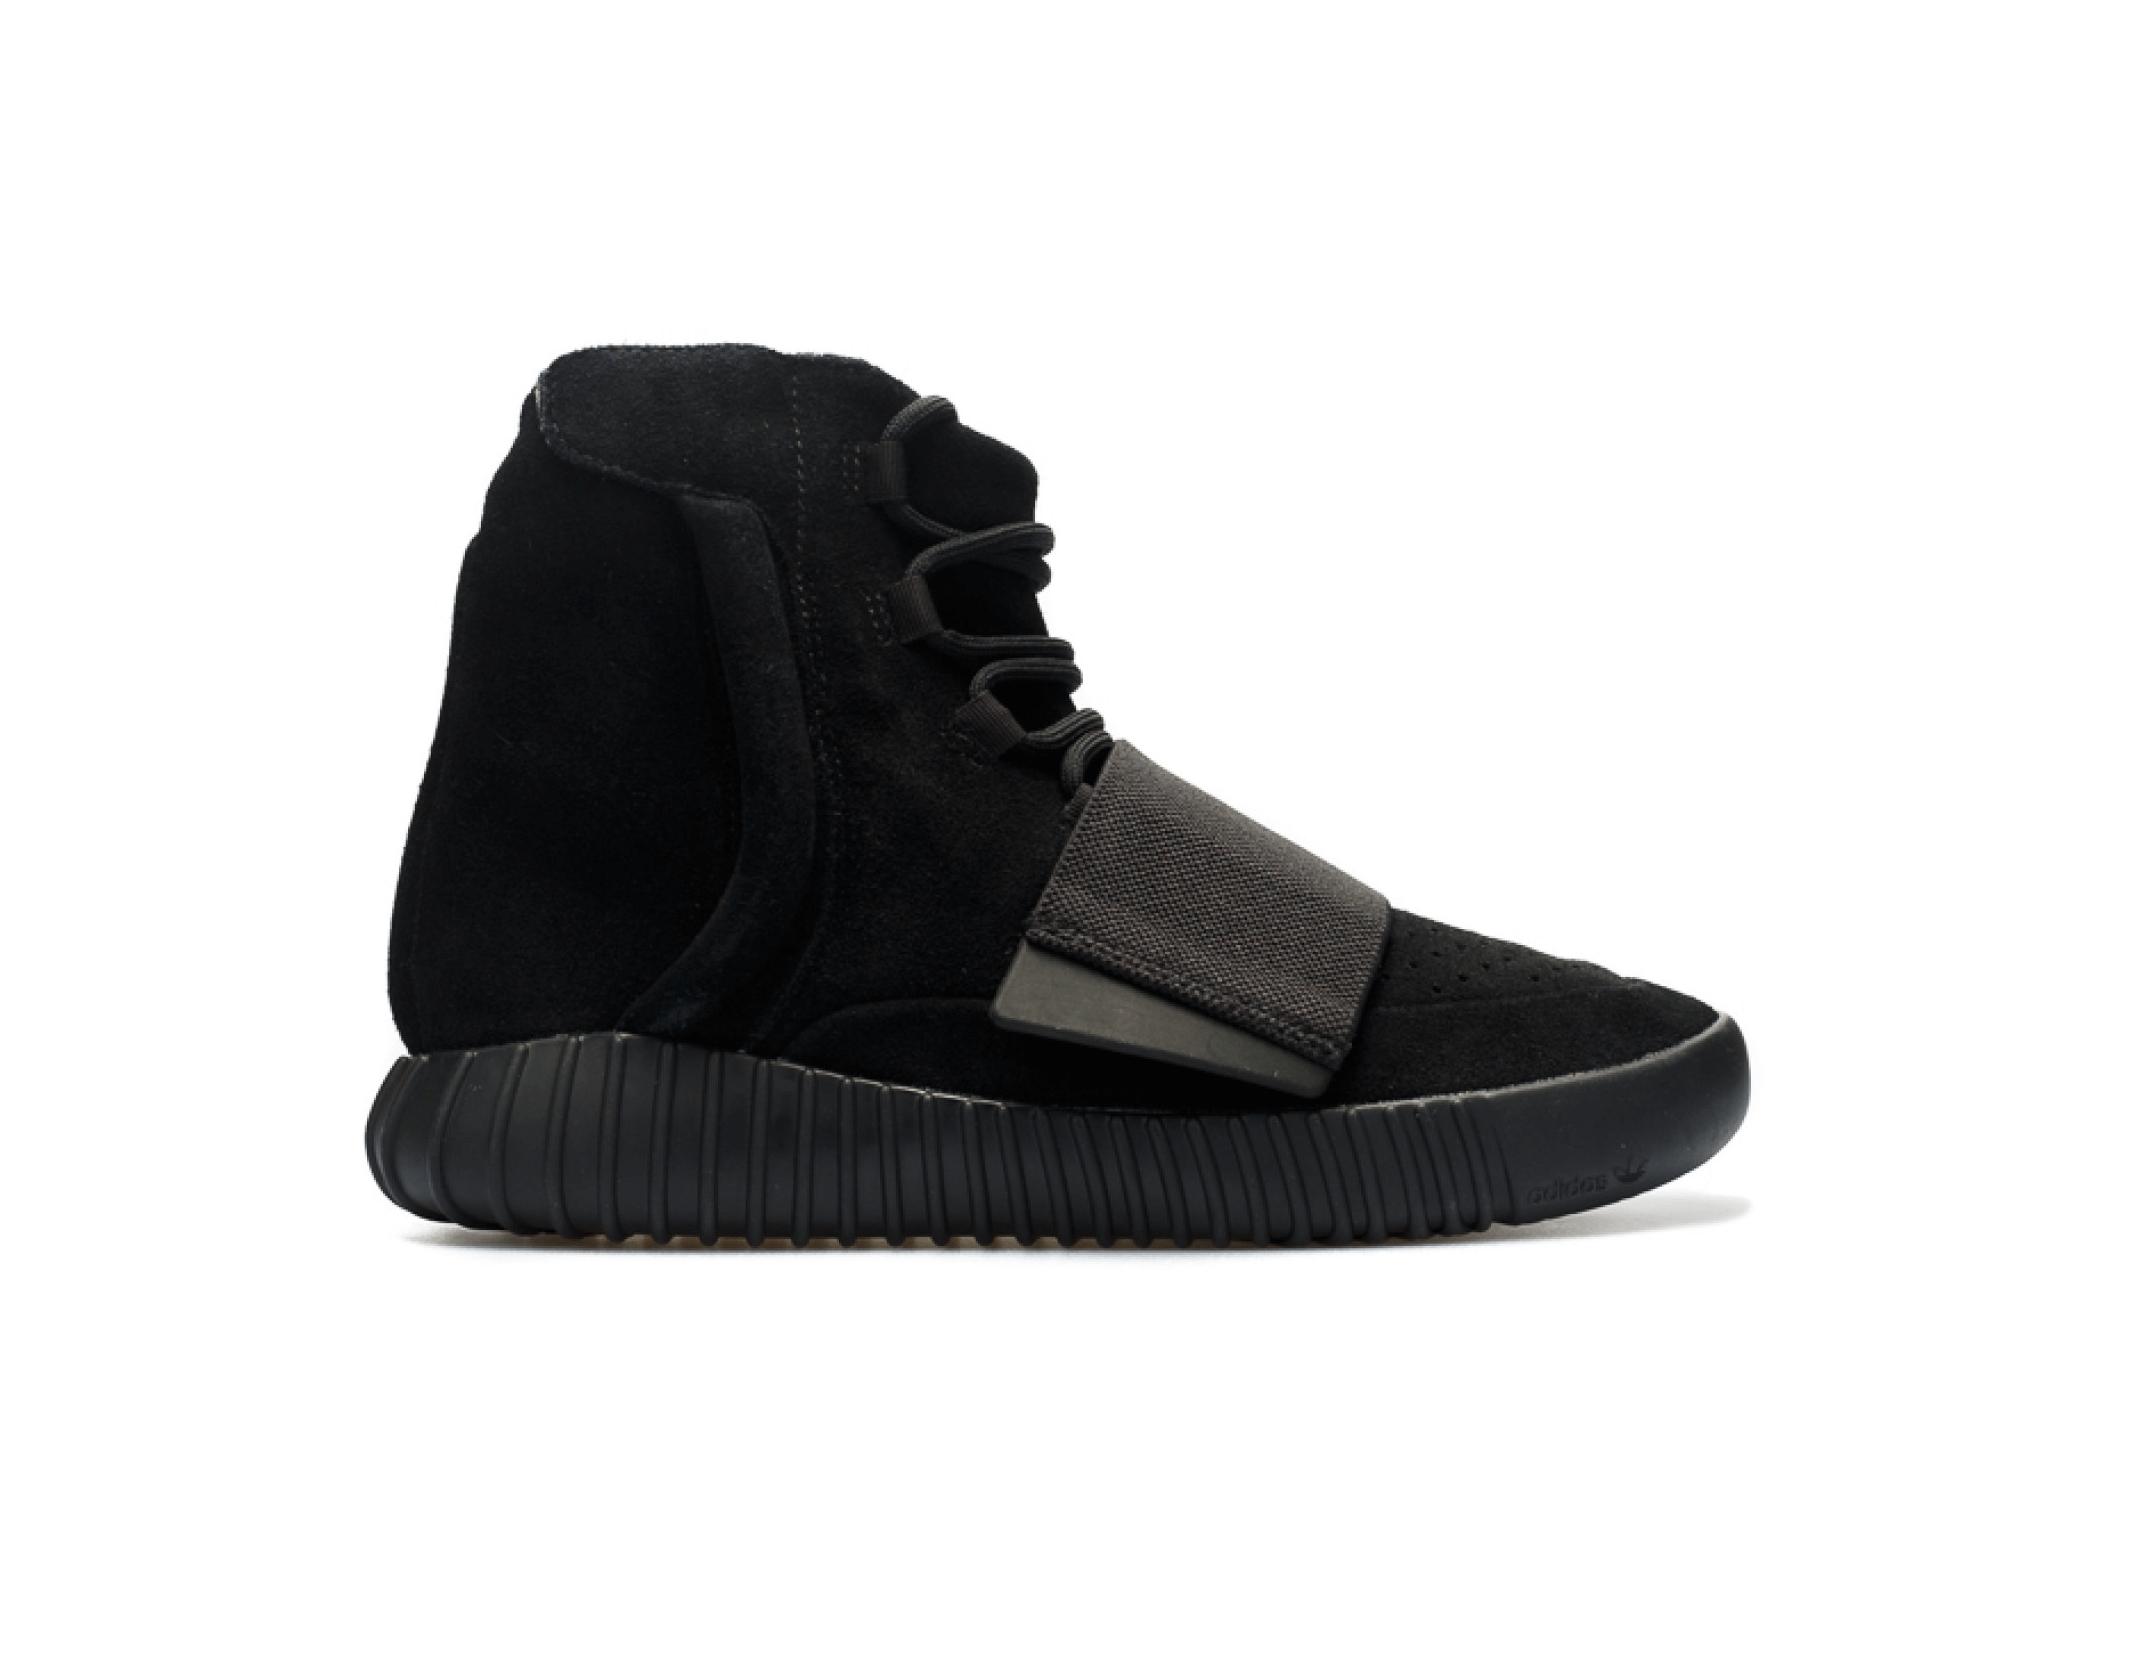 buy popular 60b70 a9f45 Adidas Yeezy Boost 750 Black